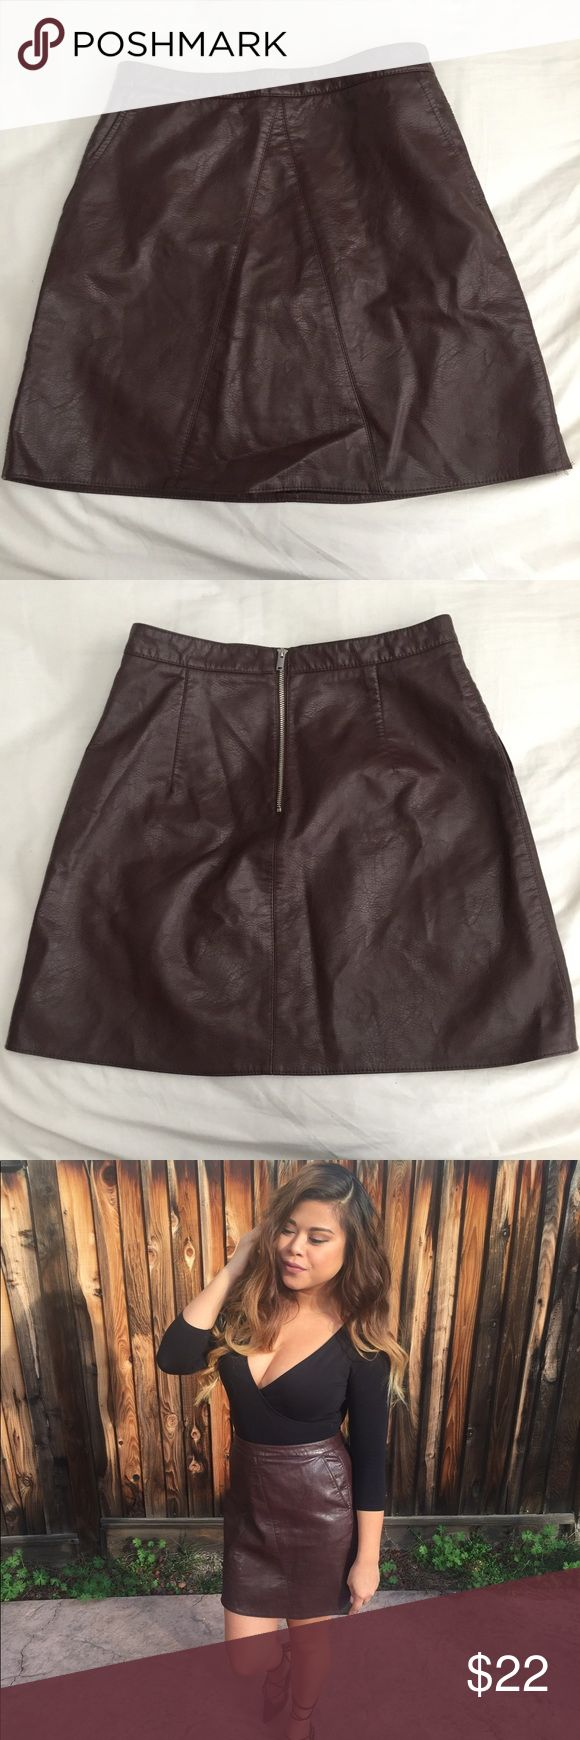 Burgundy faux leather skater skirt Size M fits a size 26-28 waist. Mini skirt length. Zara Skirts Mini